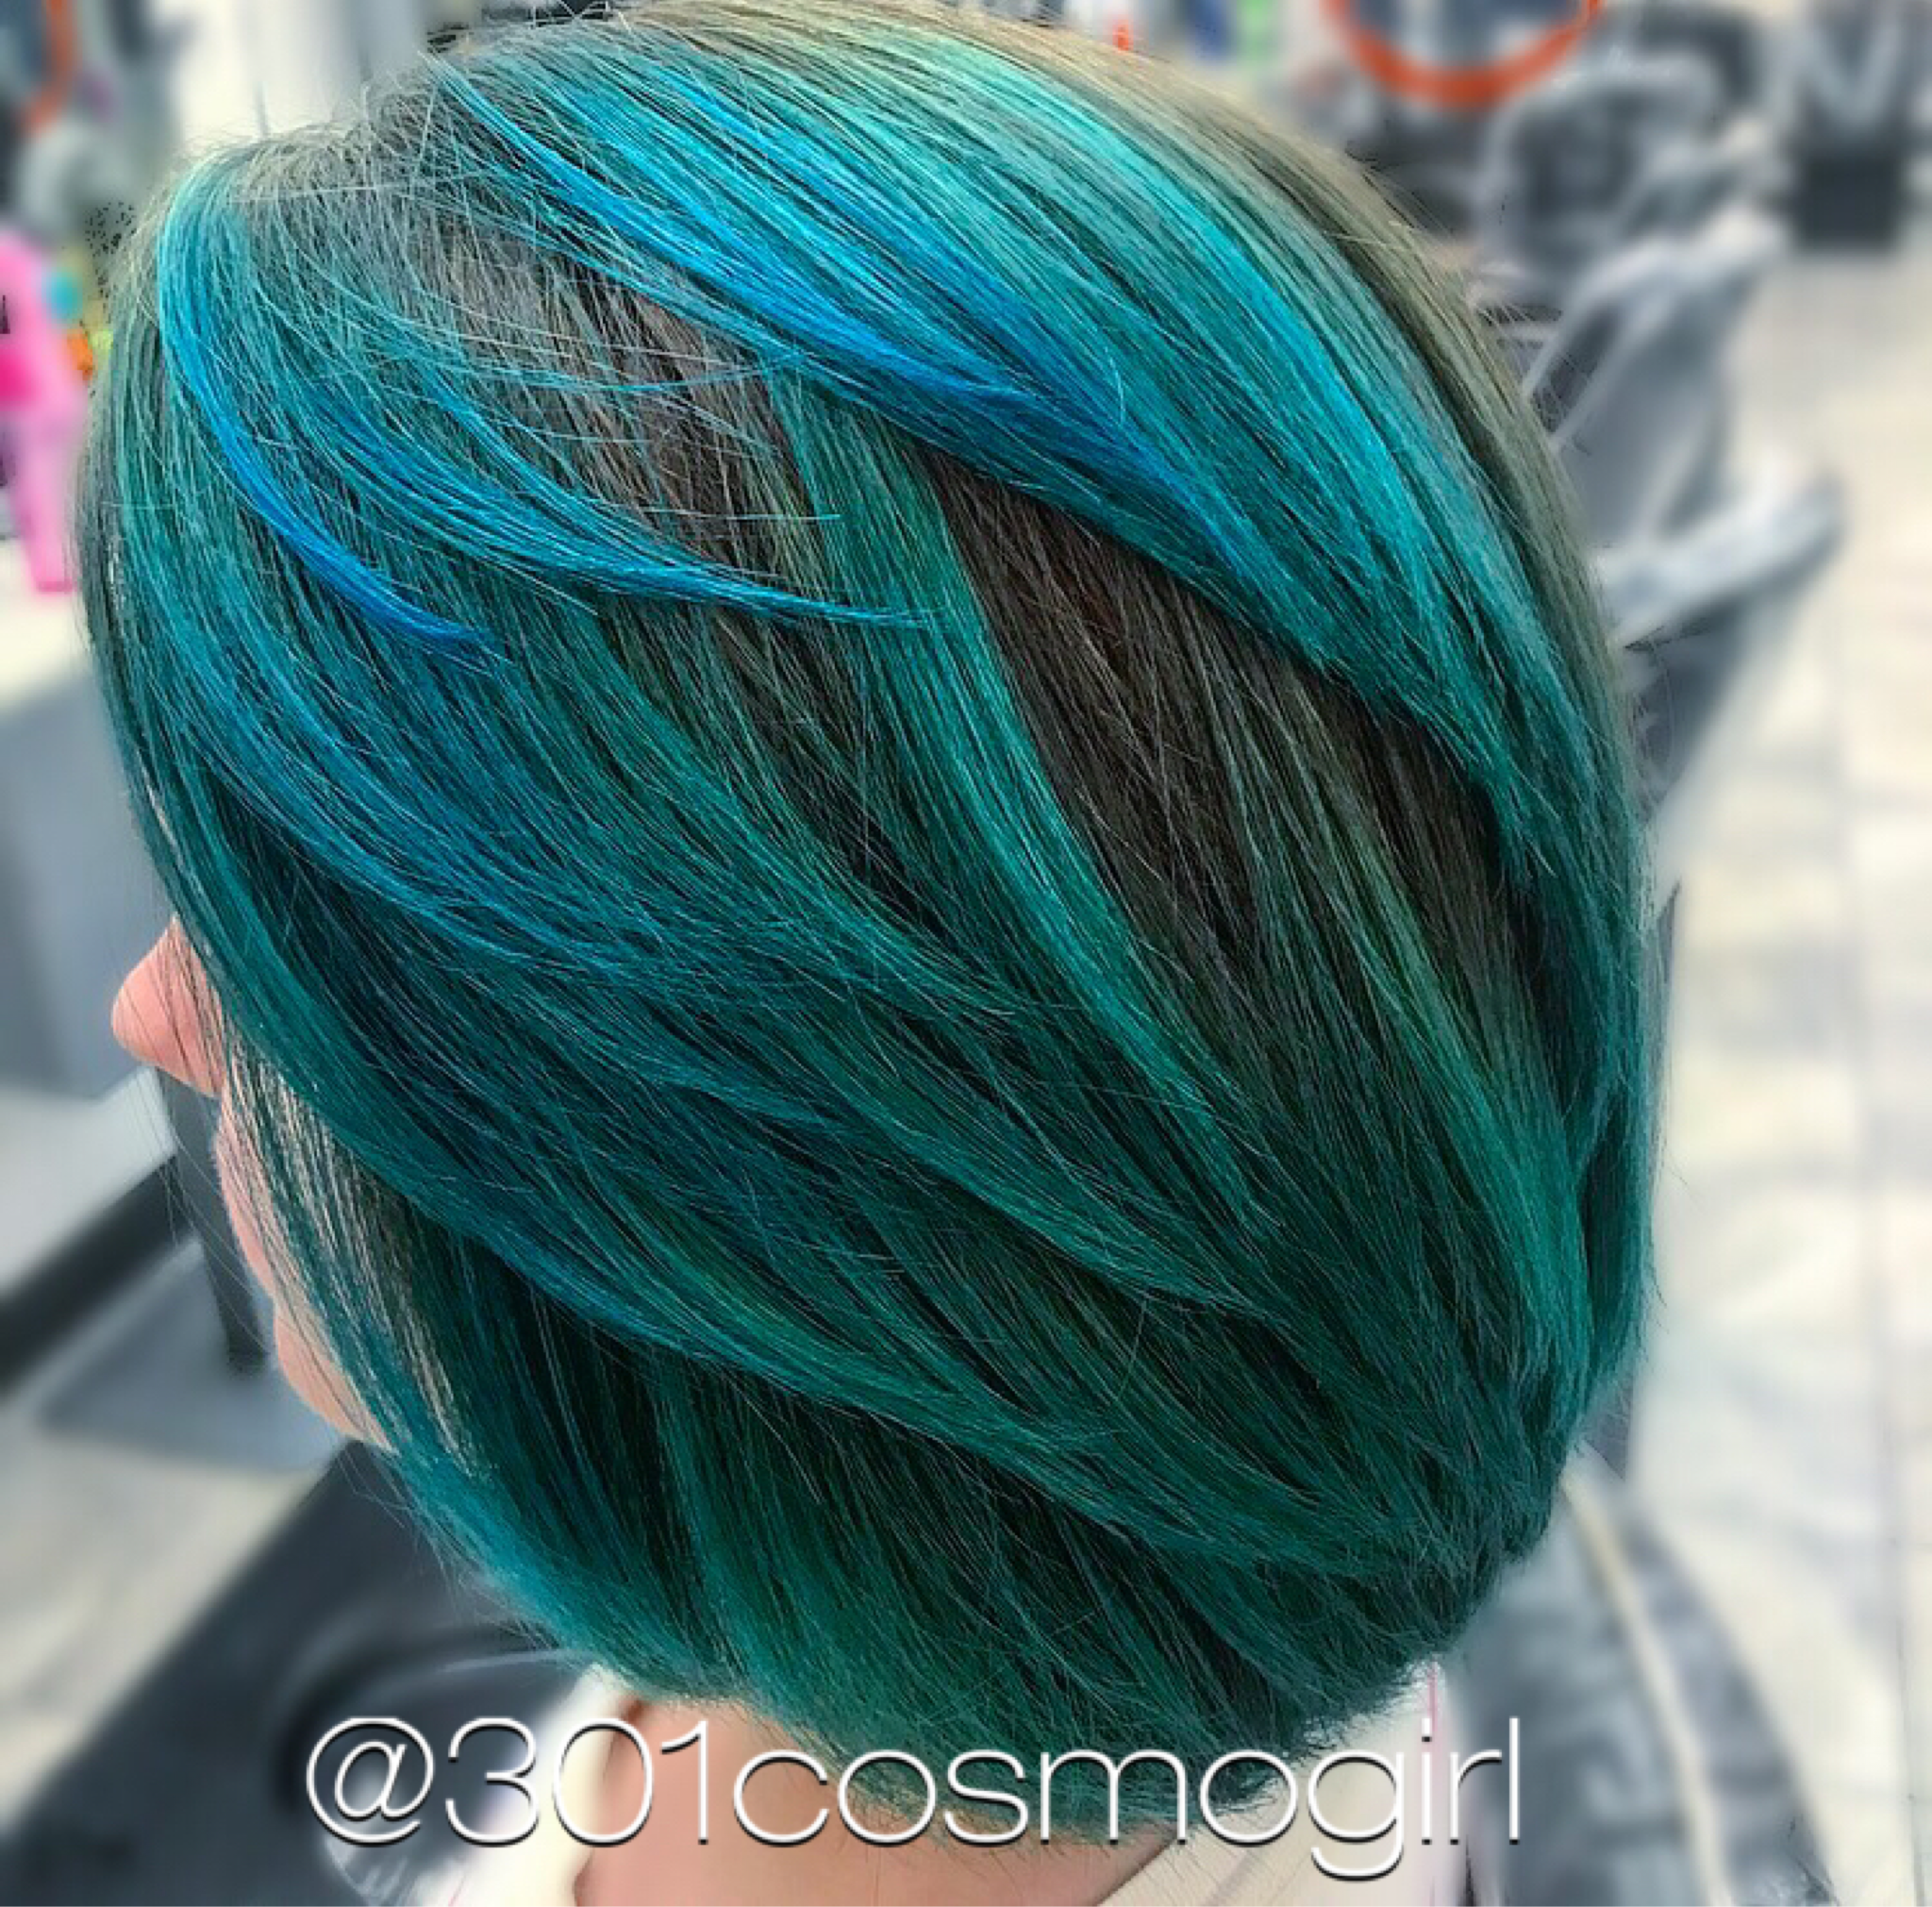 Loving This Mermaid Hair Color Used Pravana Vivids Green, Blue,